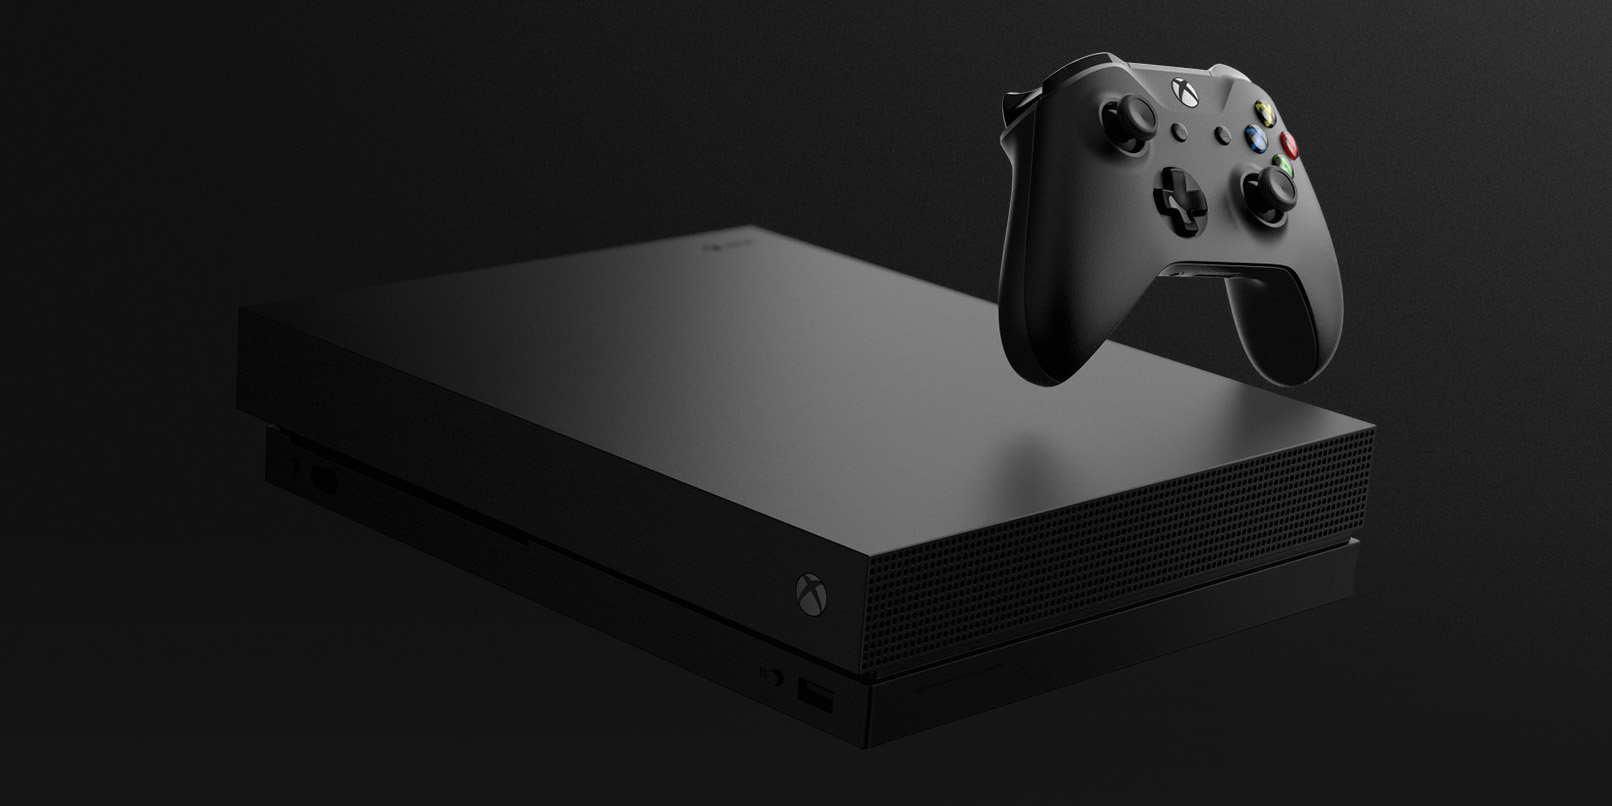 Microsoft may yet have a second next-gen Xbox coming out